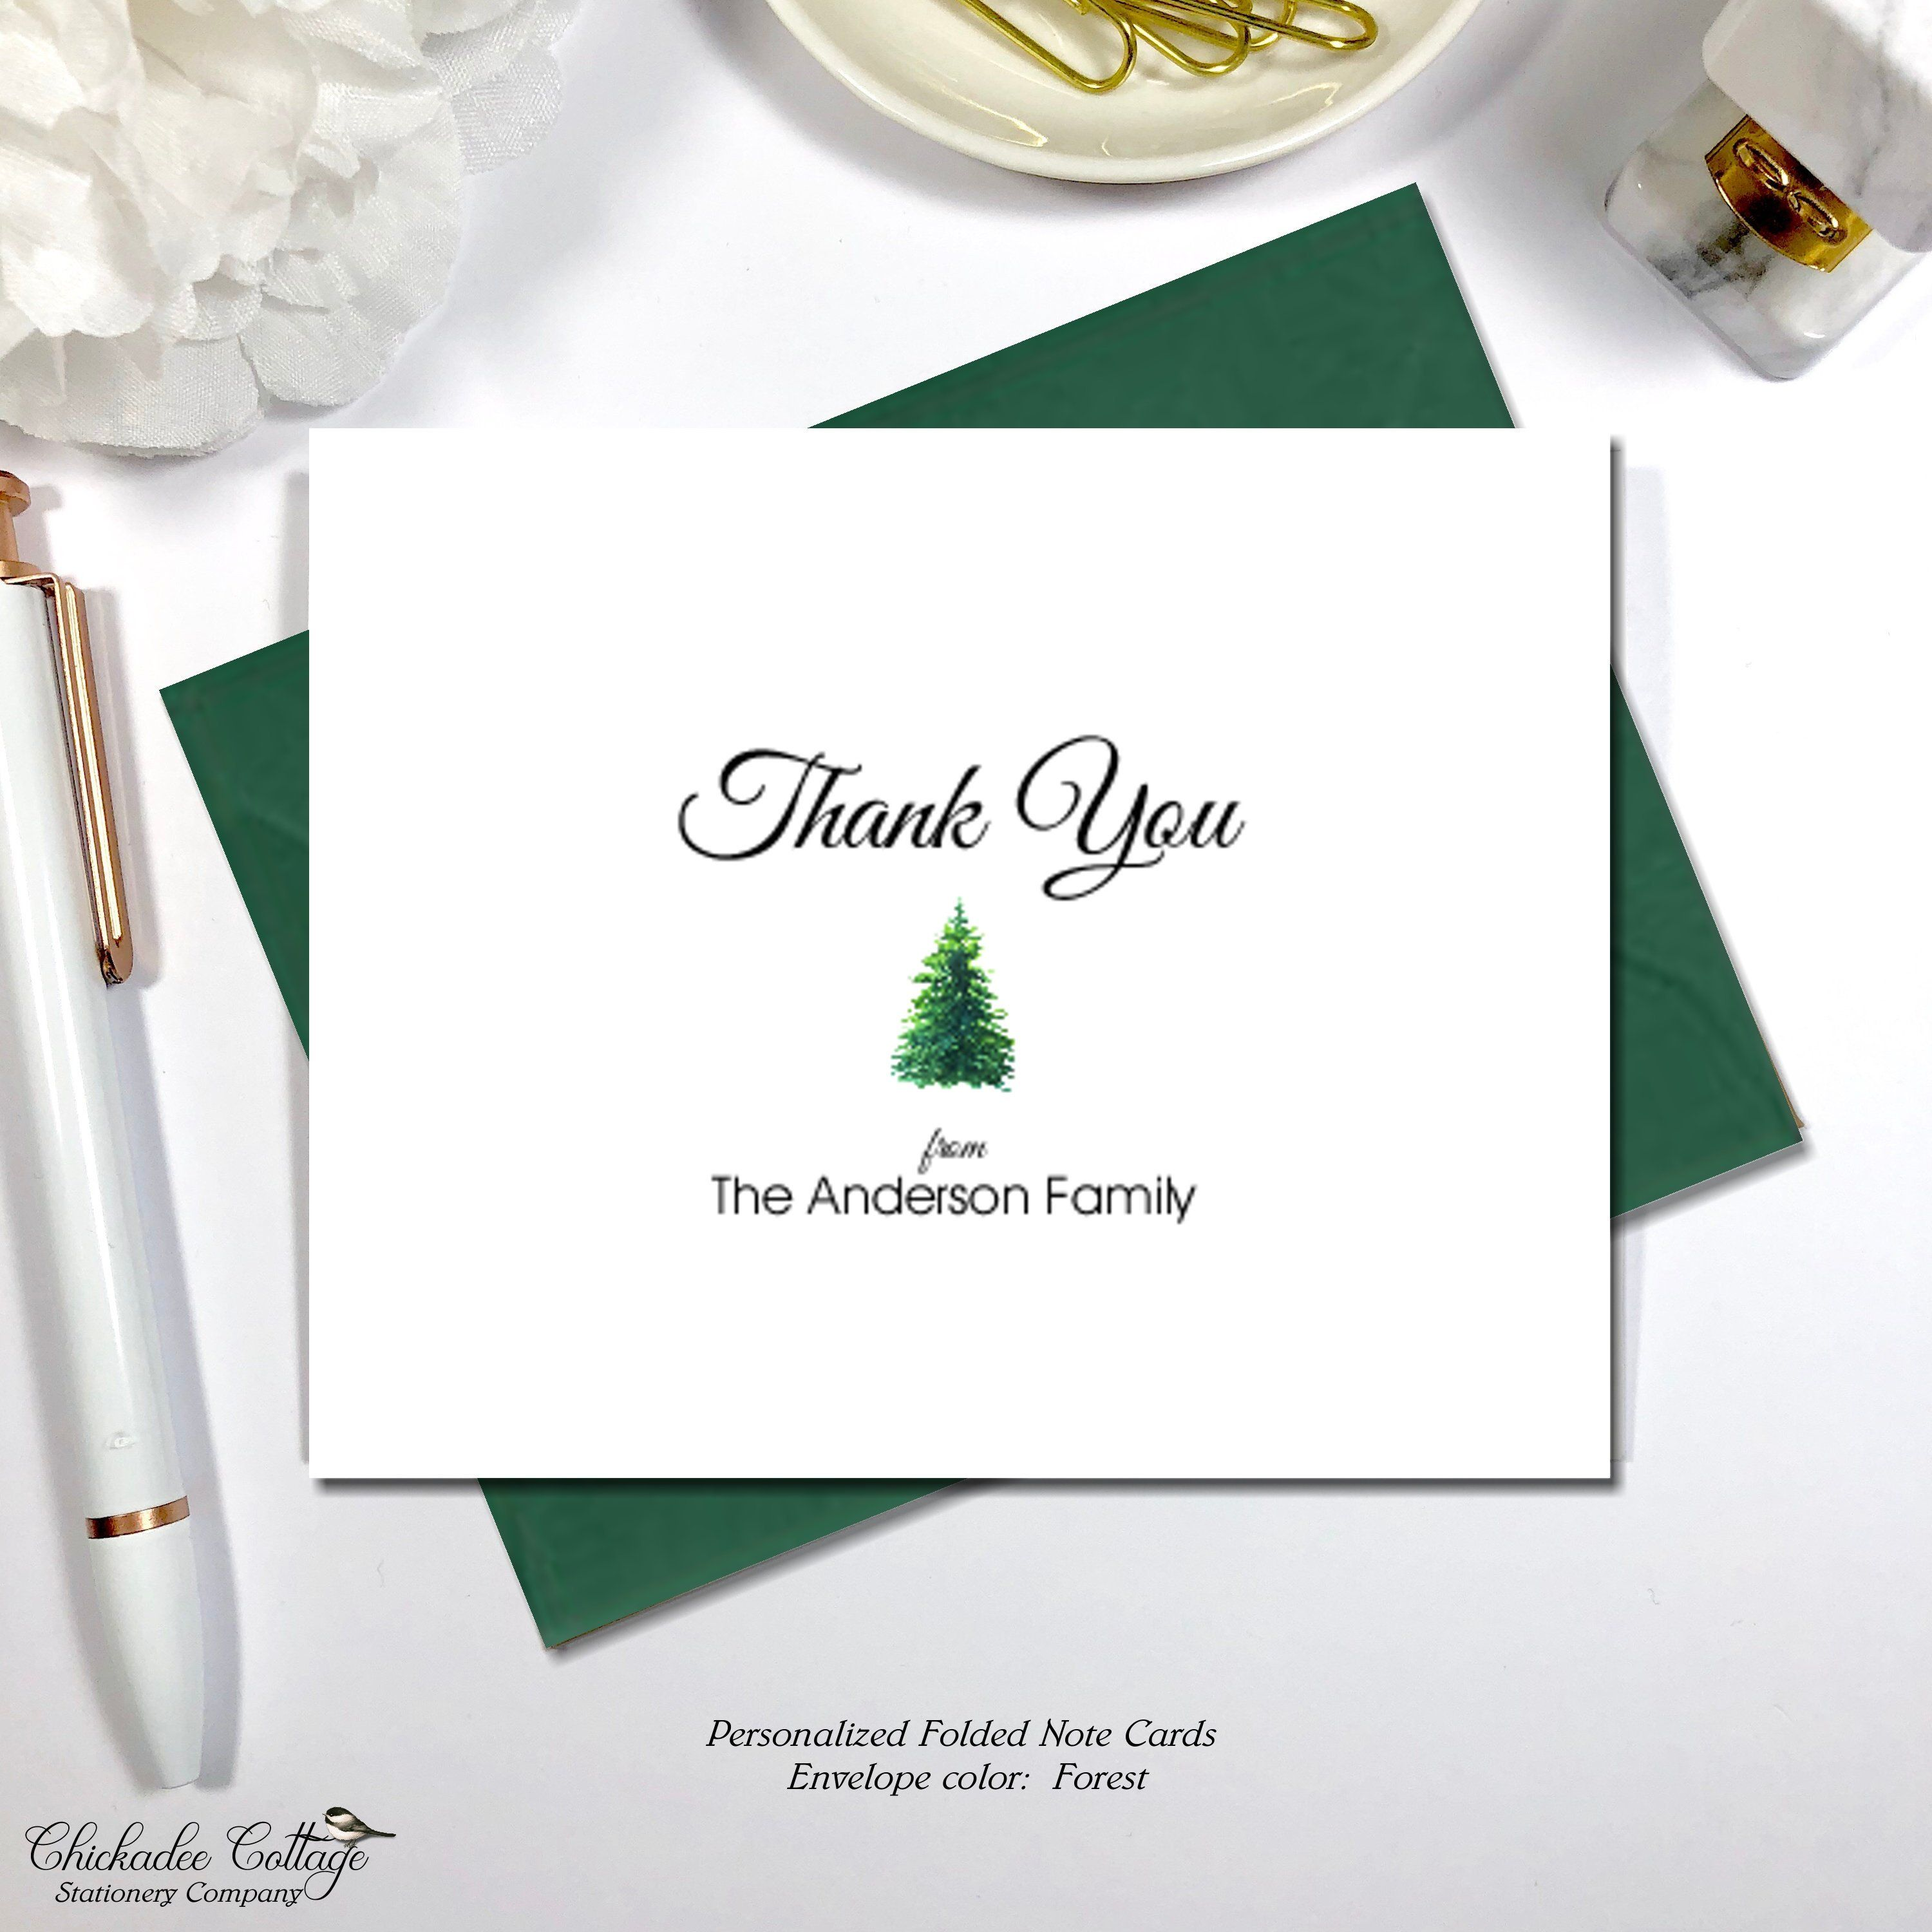 Christmas Thank You Cards Holiday Thank You Cards Family Thank You Cards Christmas Tree Christmas Thank You Christmas Thank You Folded Note Card Christmas Cards